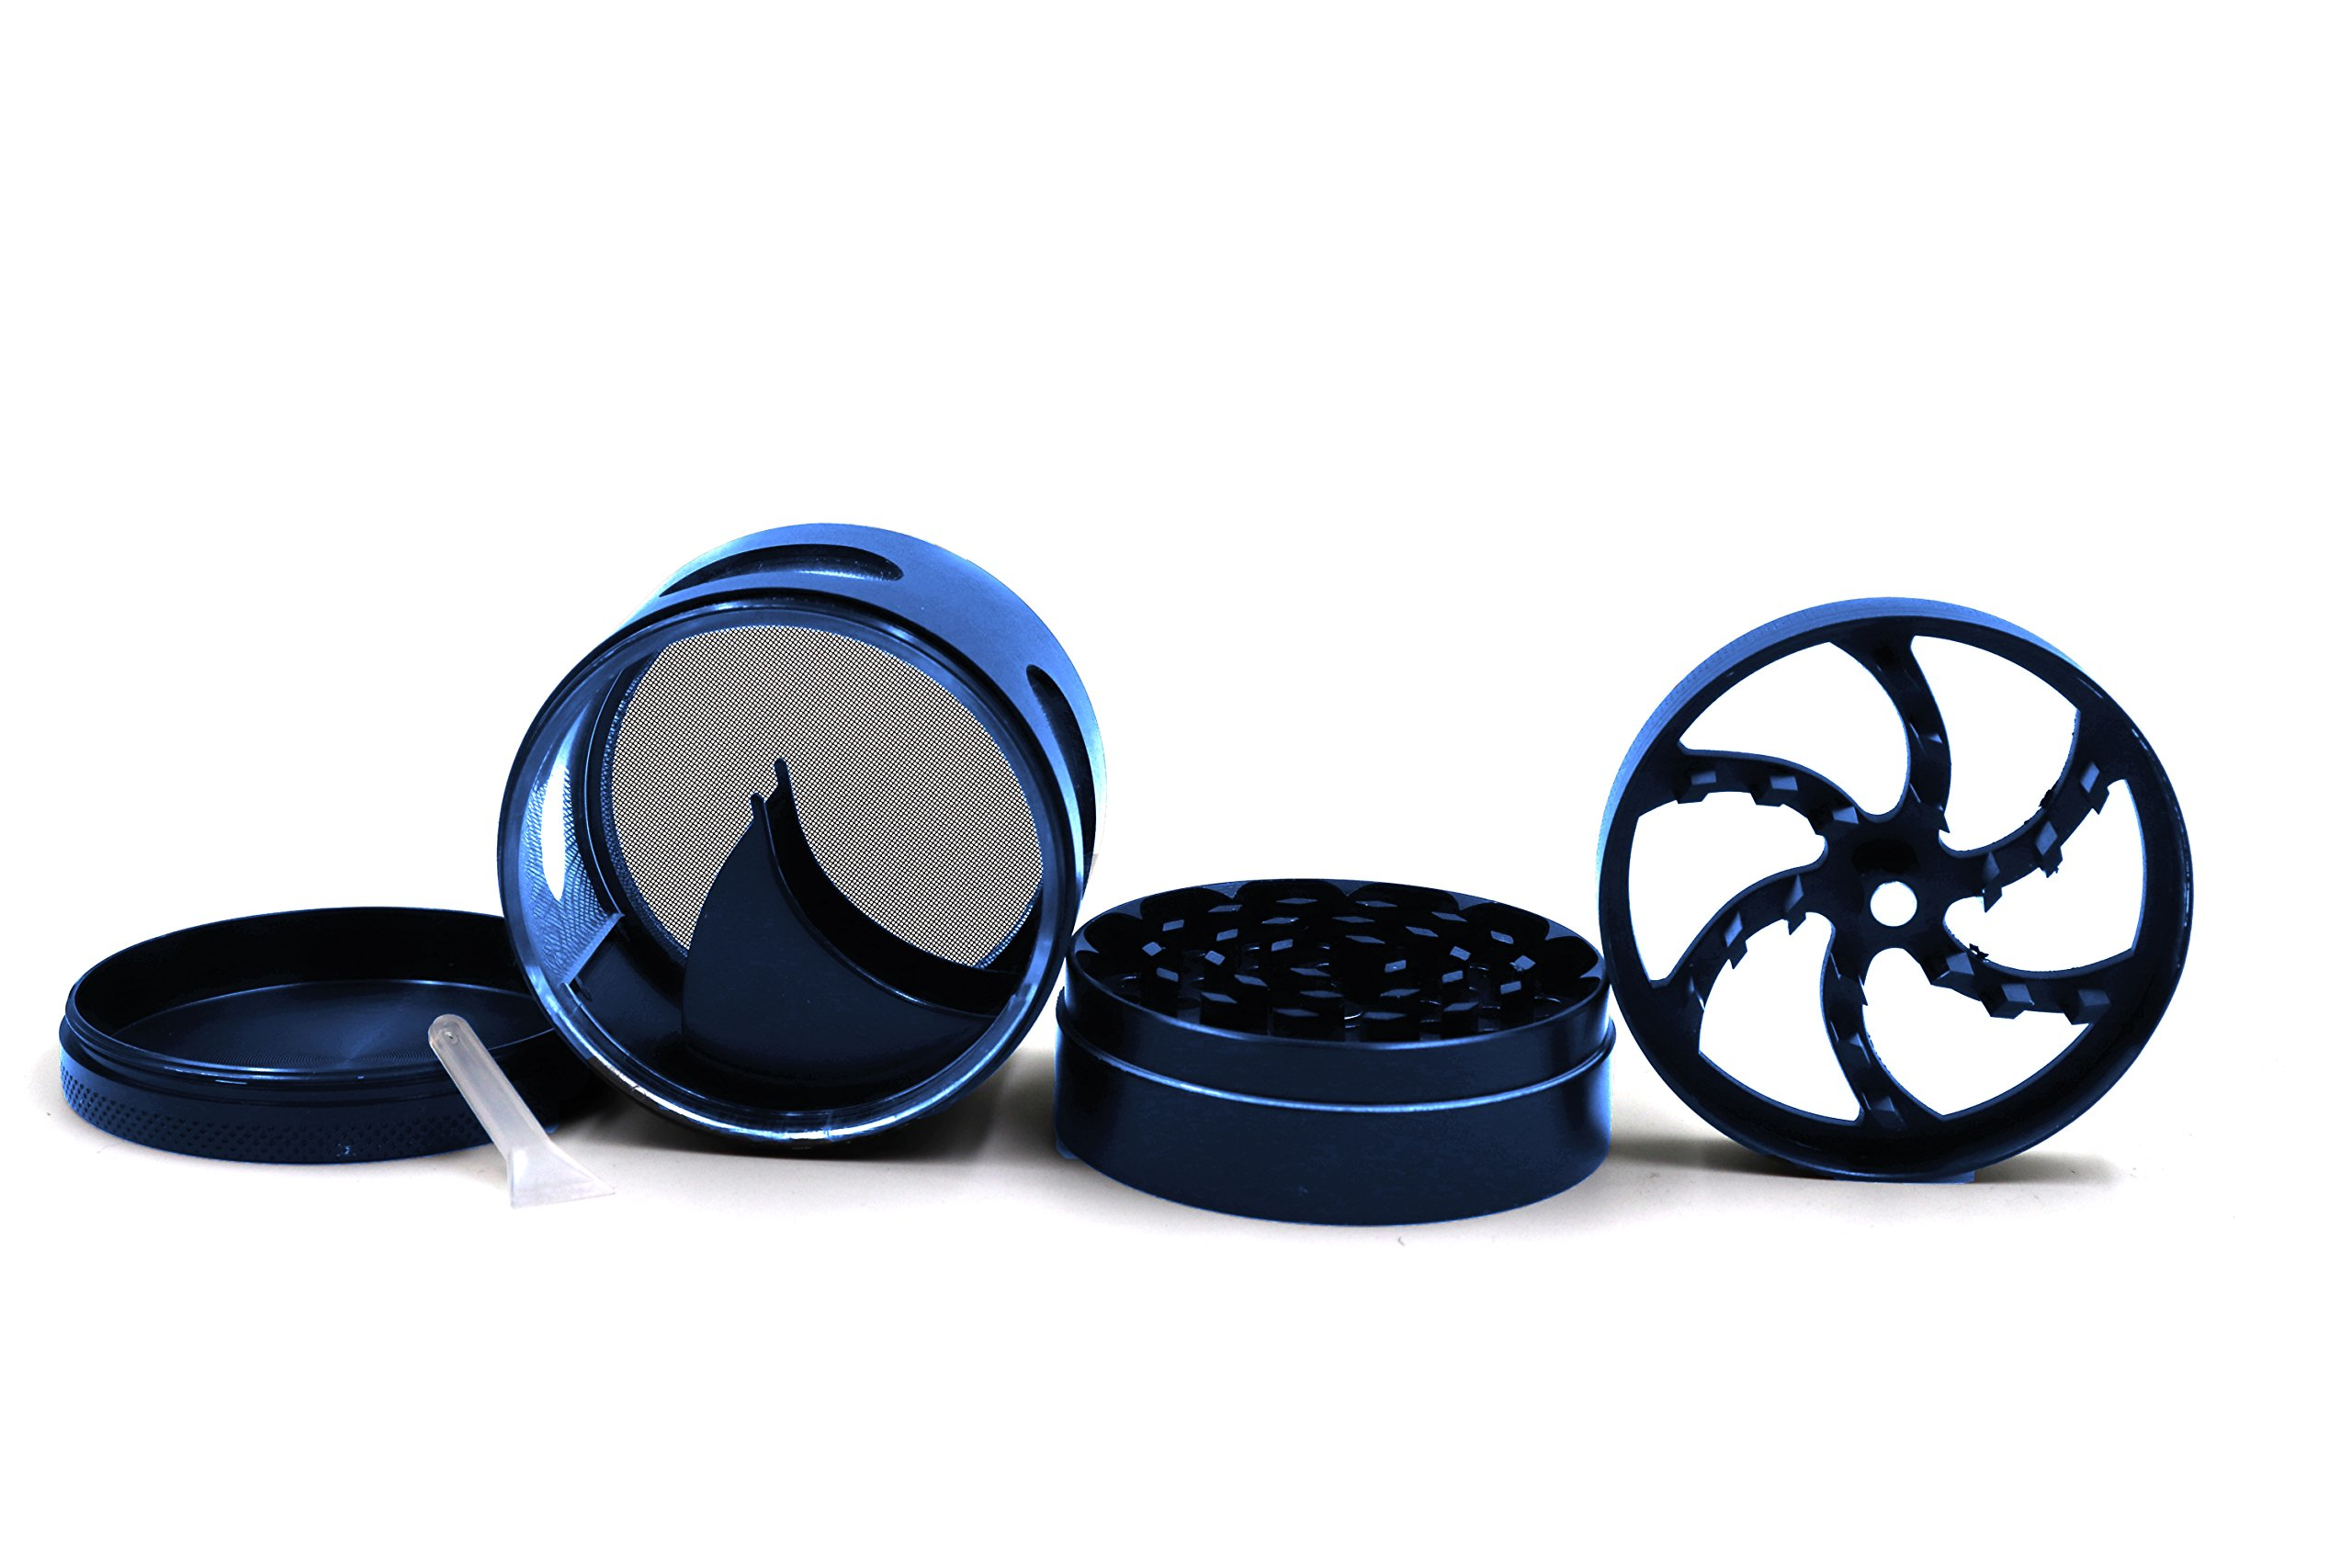 AIMAKE New Design Herb Weed& Spice 4 Piece Large 2.5 Inches Flash Windows Mills Grinder with Pollen Catcher(Blue) by aiMaKE (Image #3)